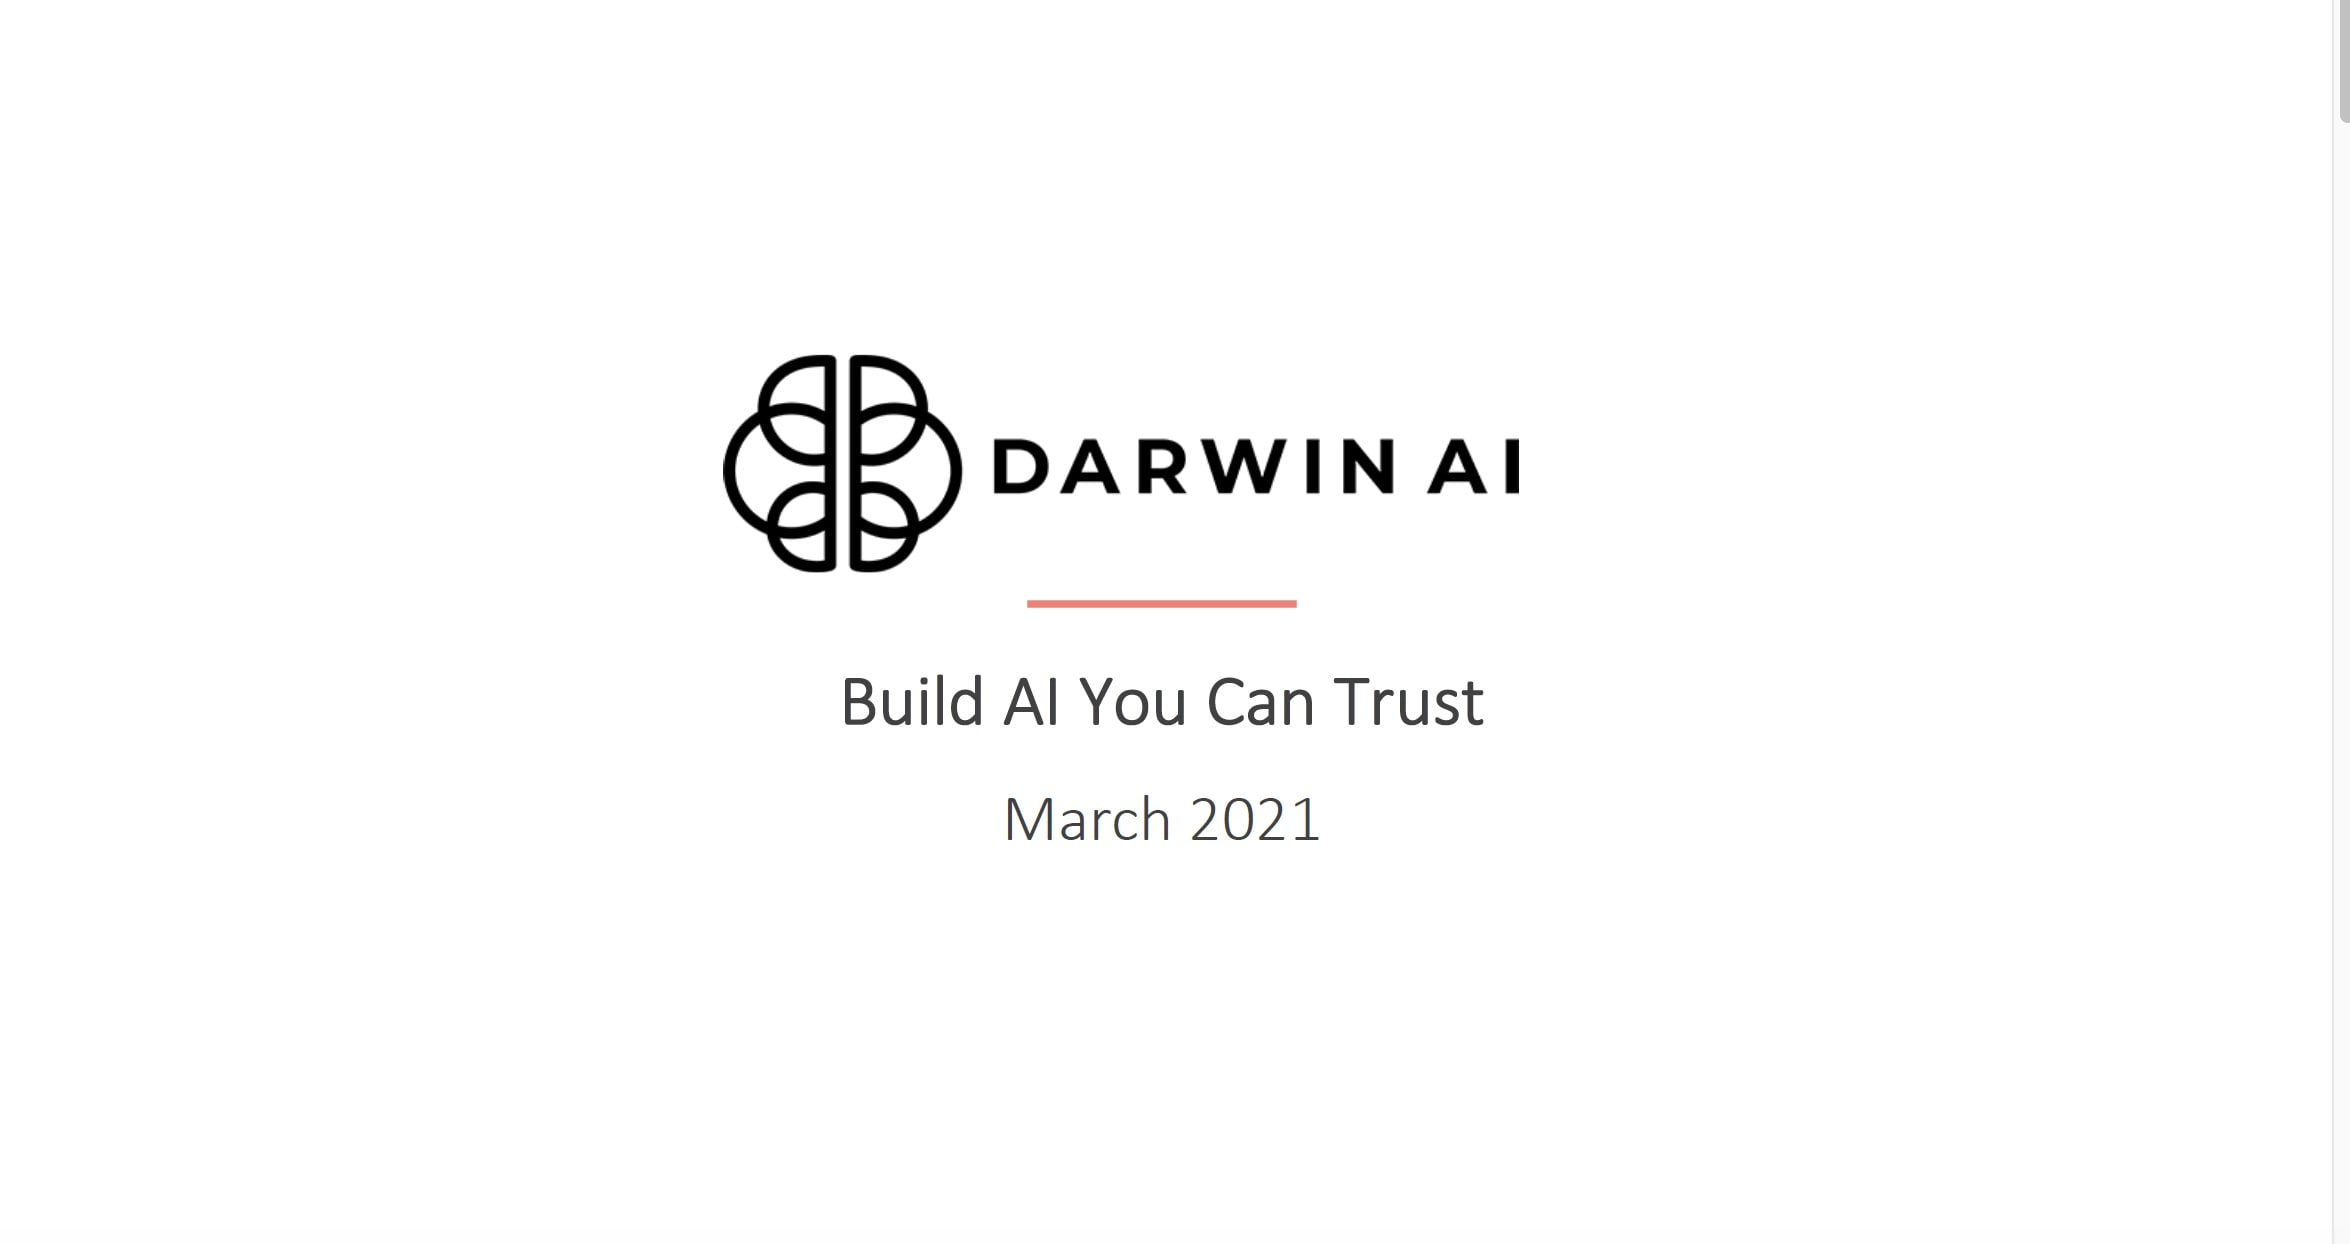 DarwinAI: AI for Manufacturing